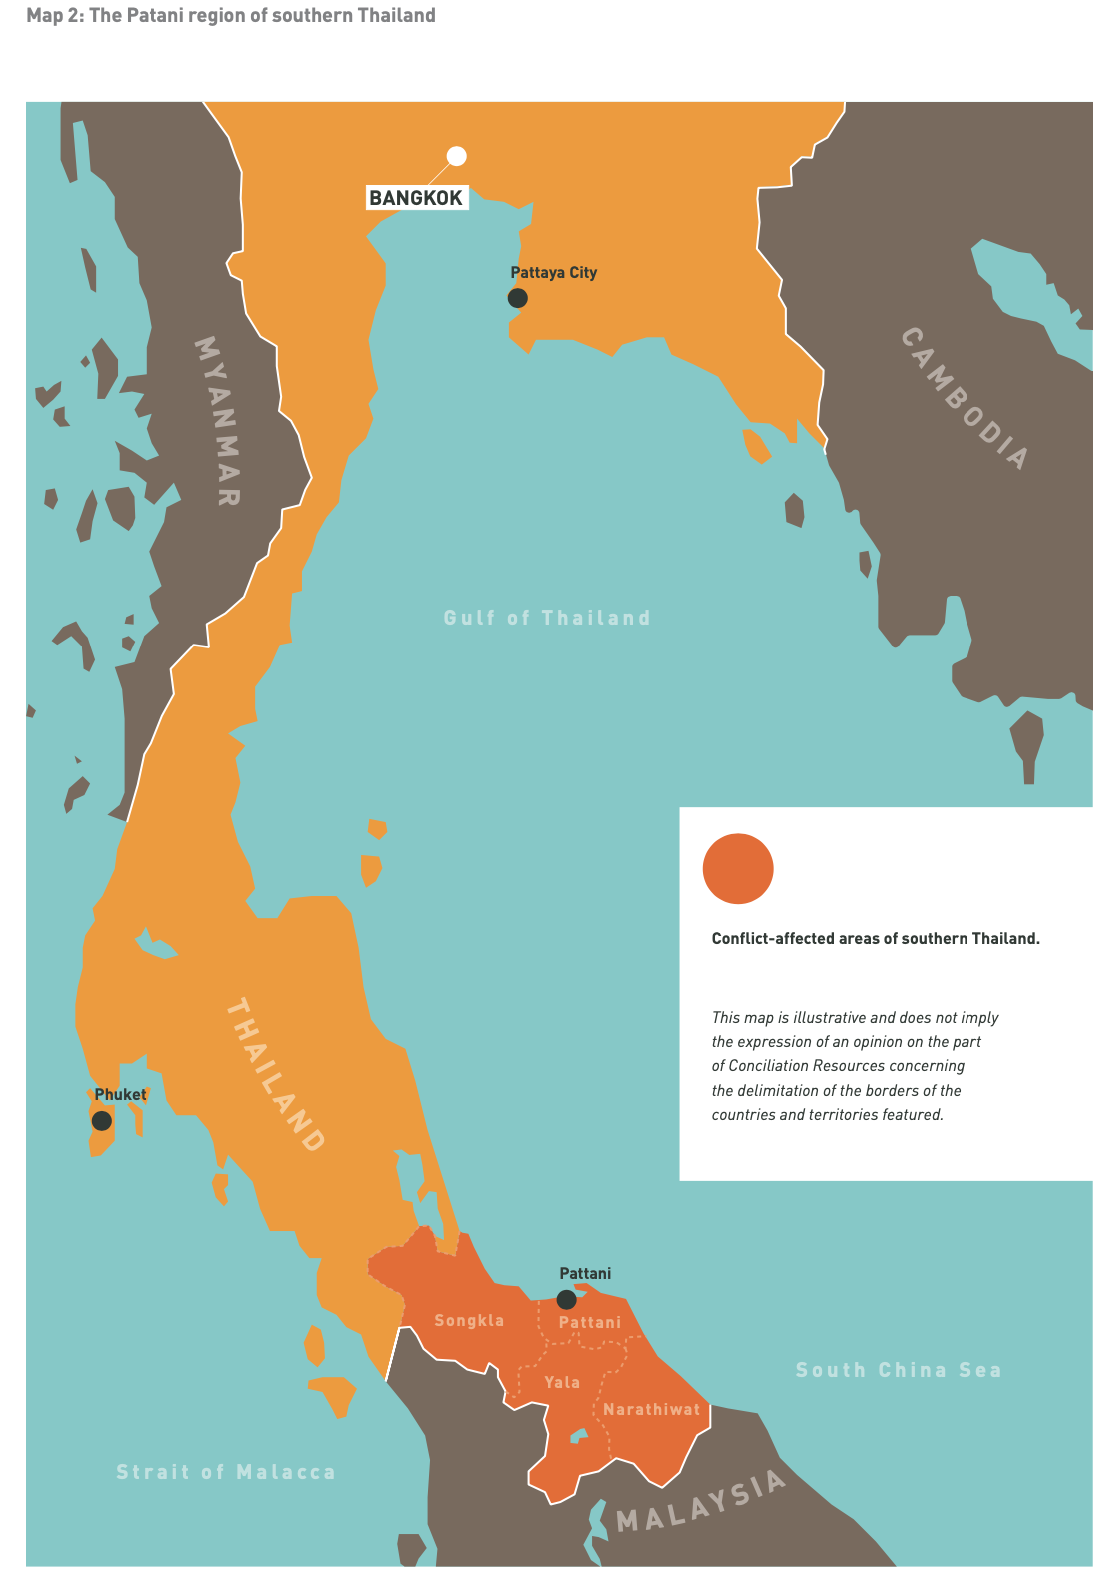 Map 2: The Patani region of southern Thailand